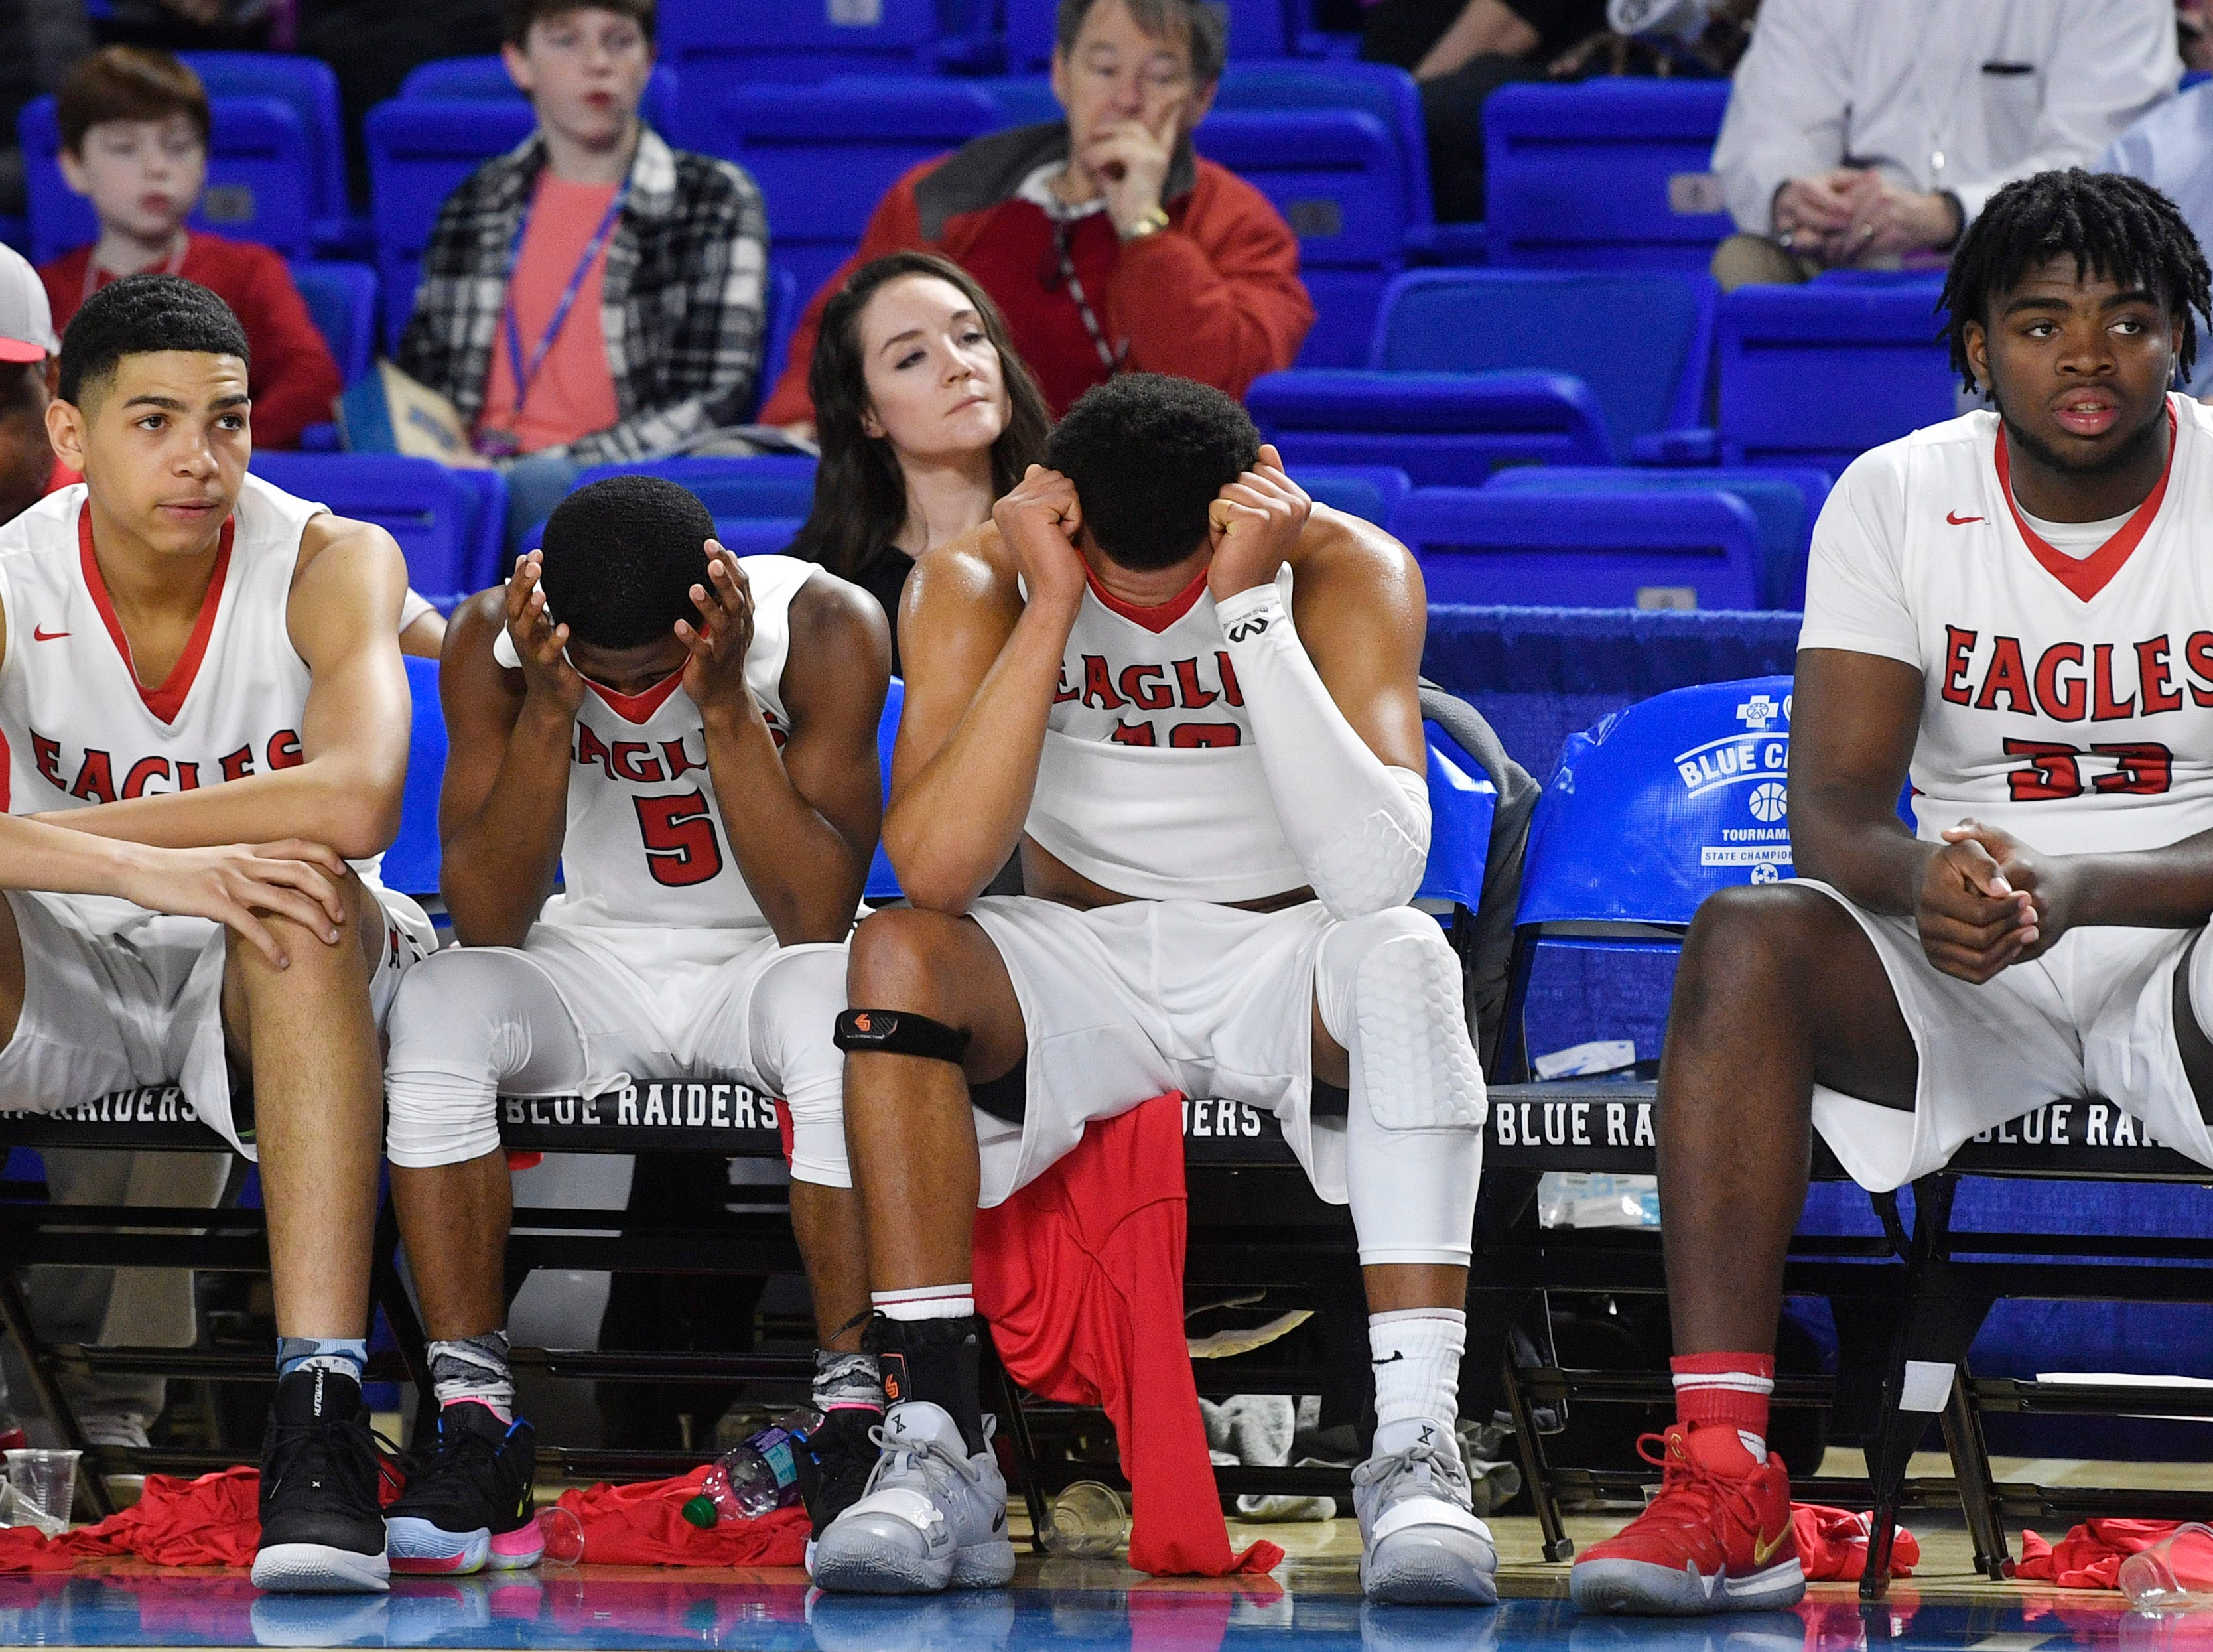 The East Nashville bench at the end of the game reflected the score as they were defeated 66-55 by Fulton in the TSSAA Class AA semifinal  Friday, March 15, 2019, in Murfreesboro, Tenn.